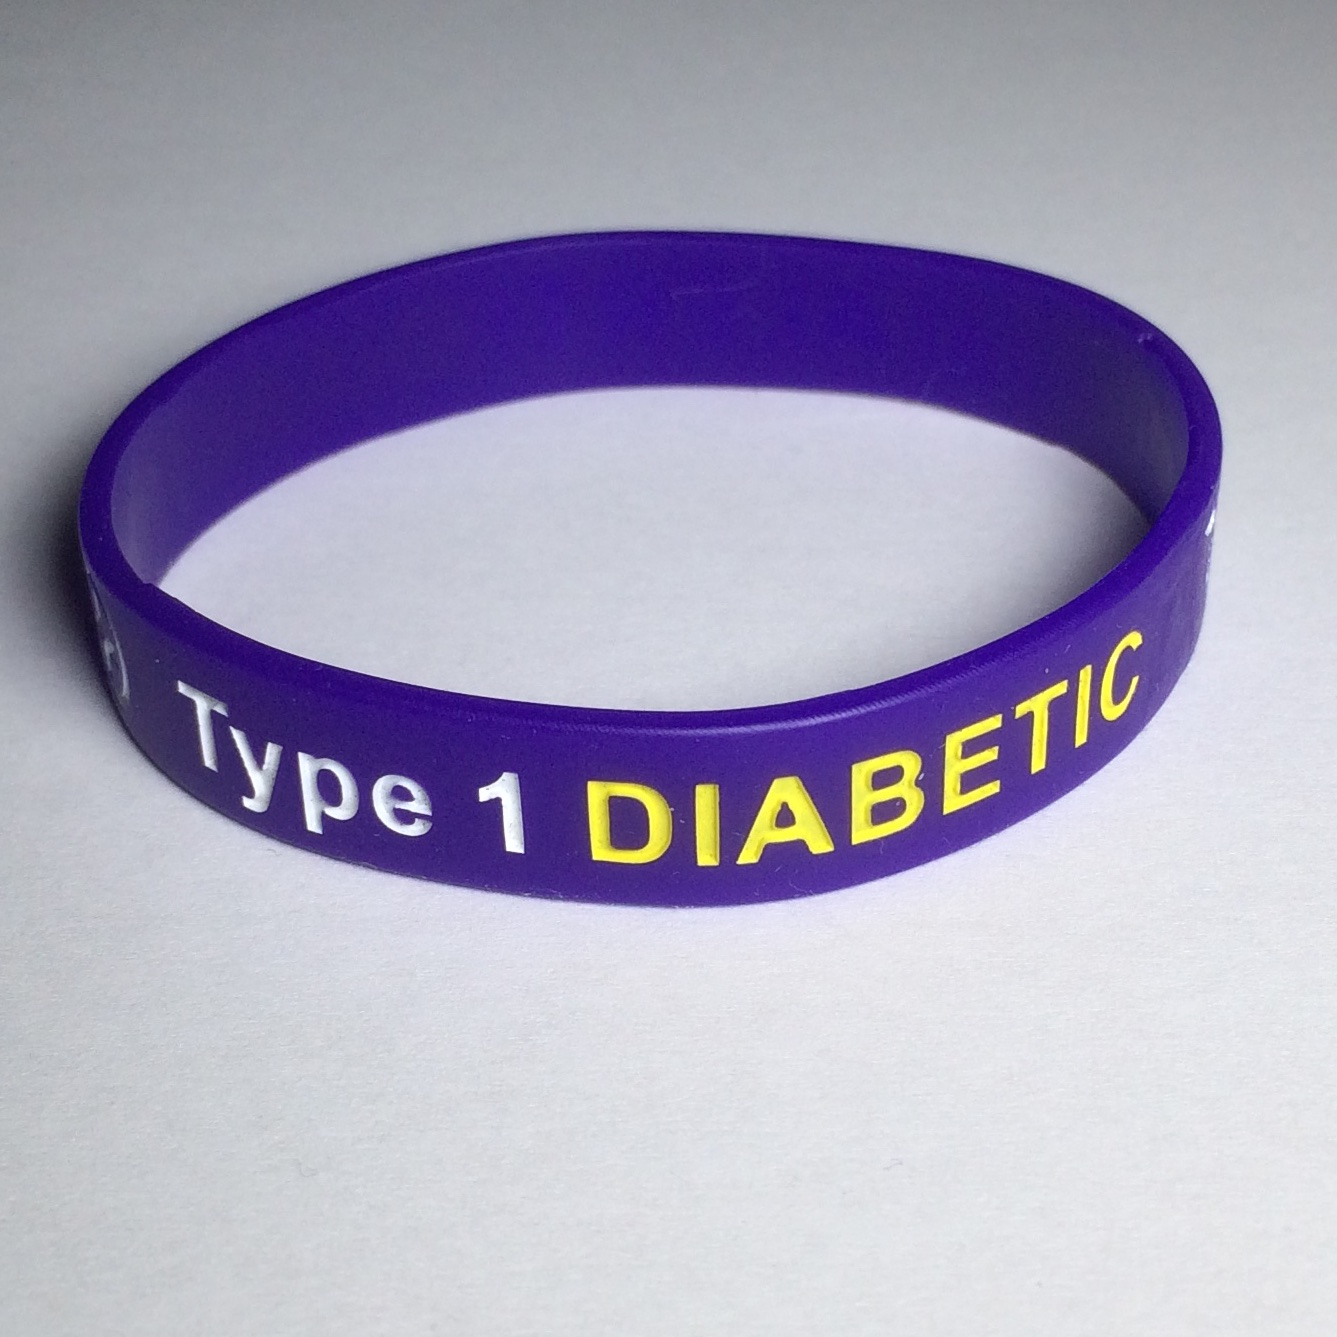 Type 1 Diabetic medical ID wristband.